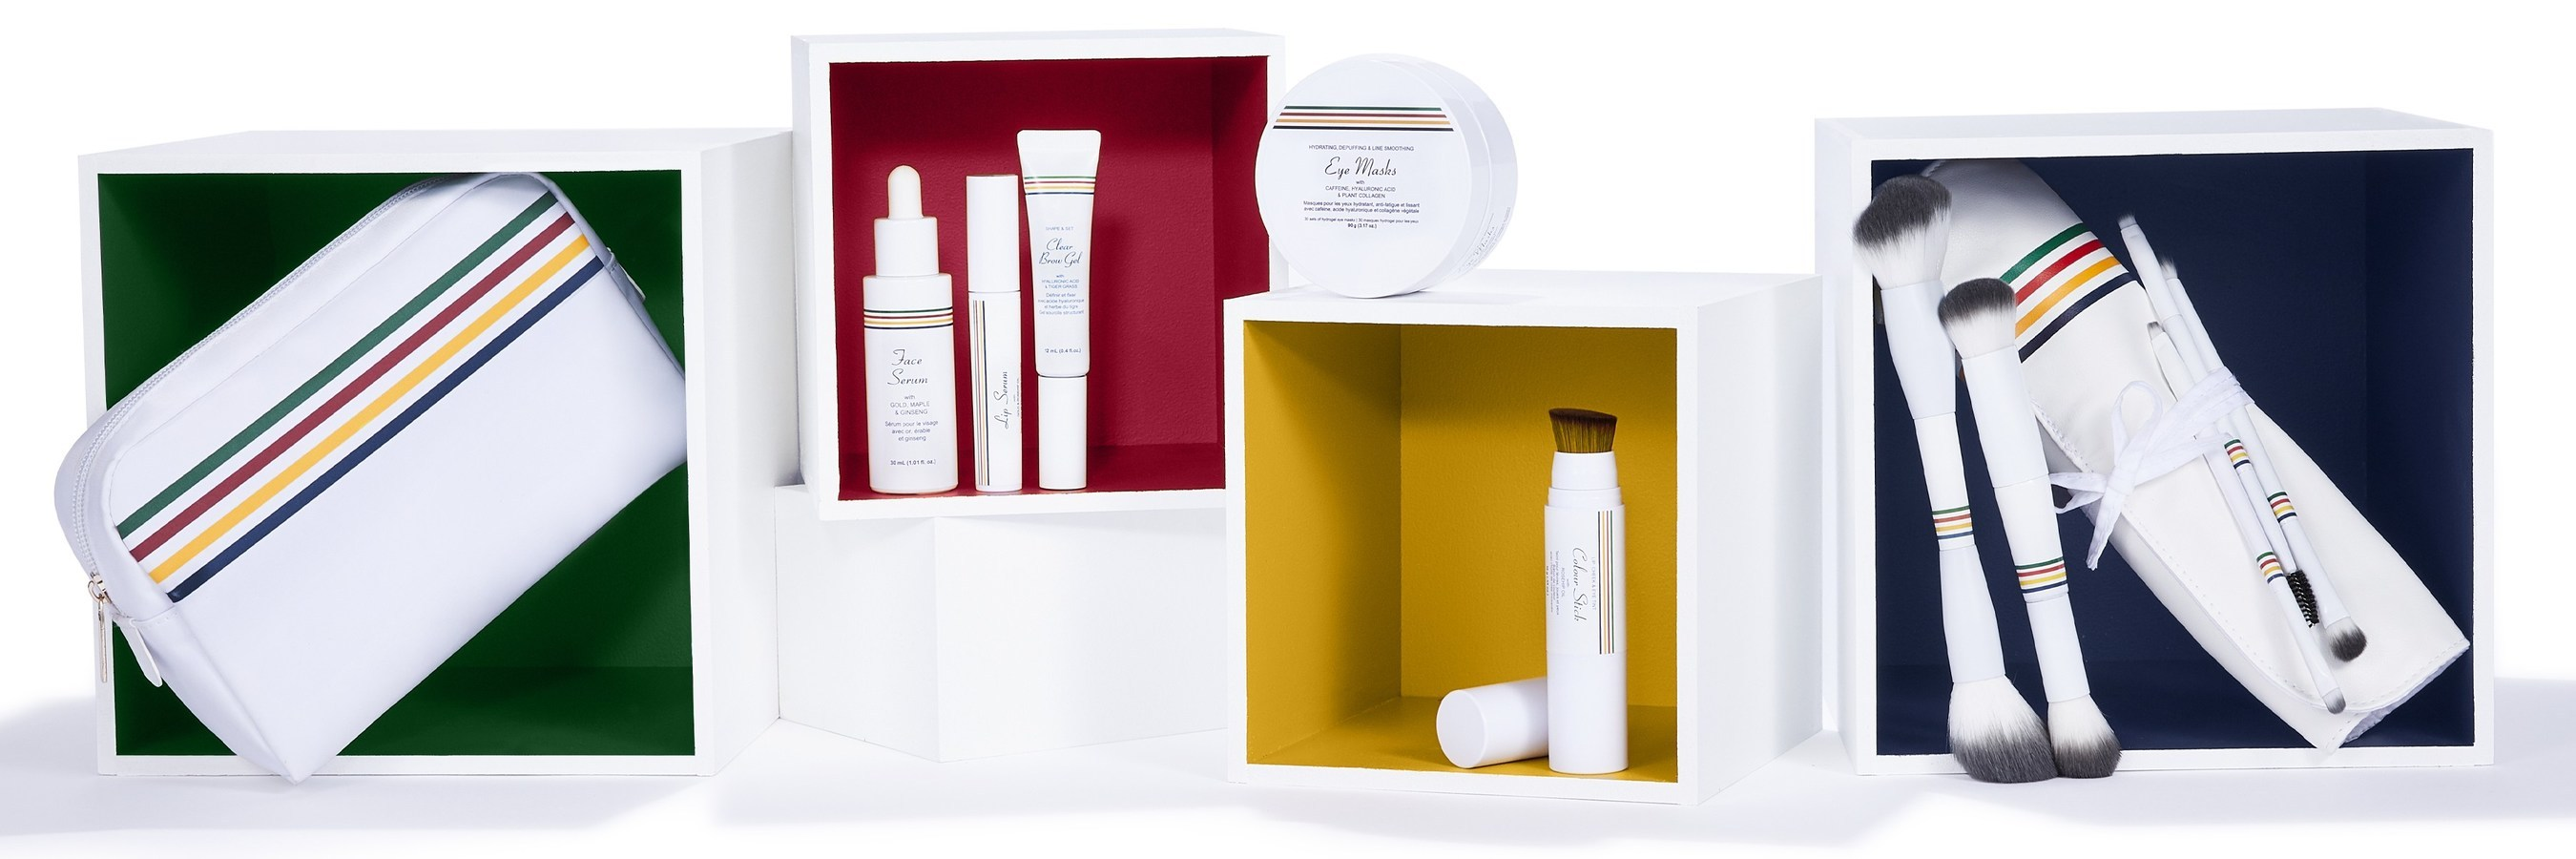 Hudson's Bay launches first private label beauty products